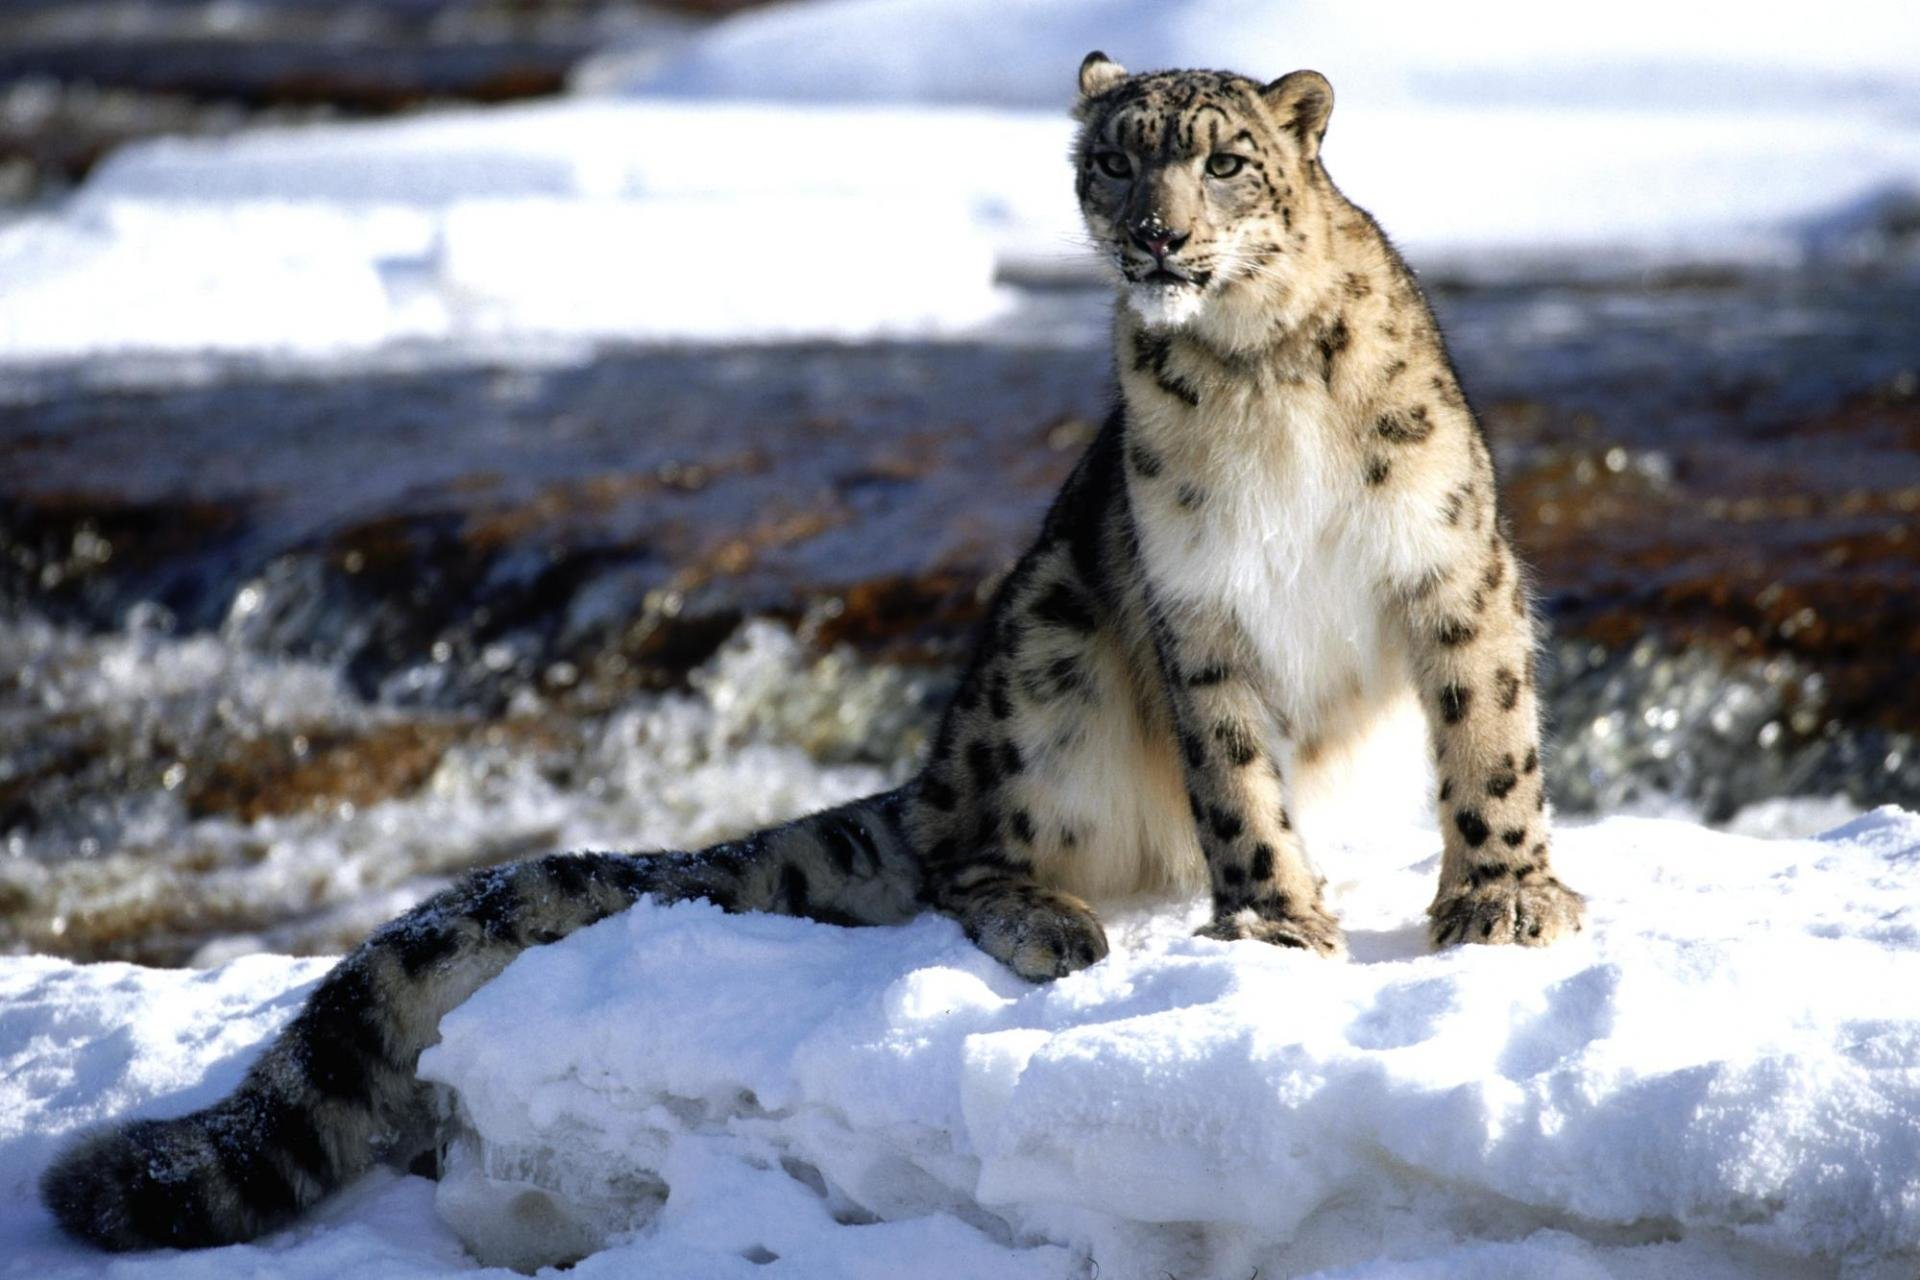 Download hd 1920x1280 Snow Leopard PC wallpaper ID:34527 for free